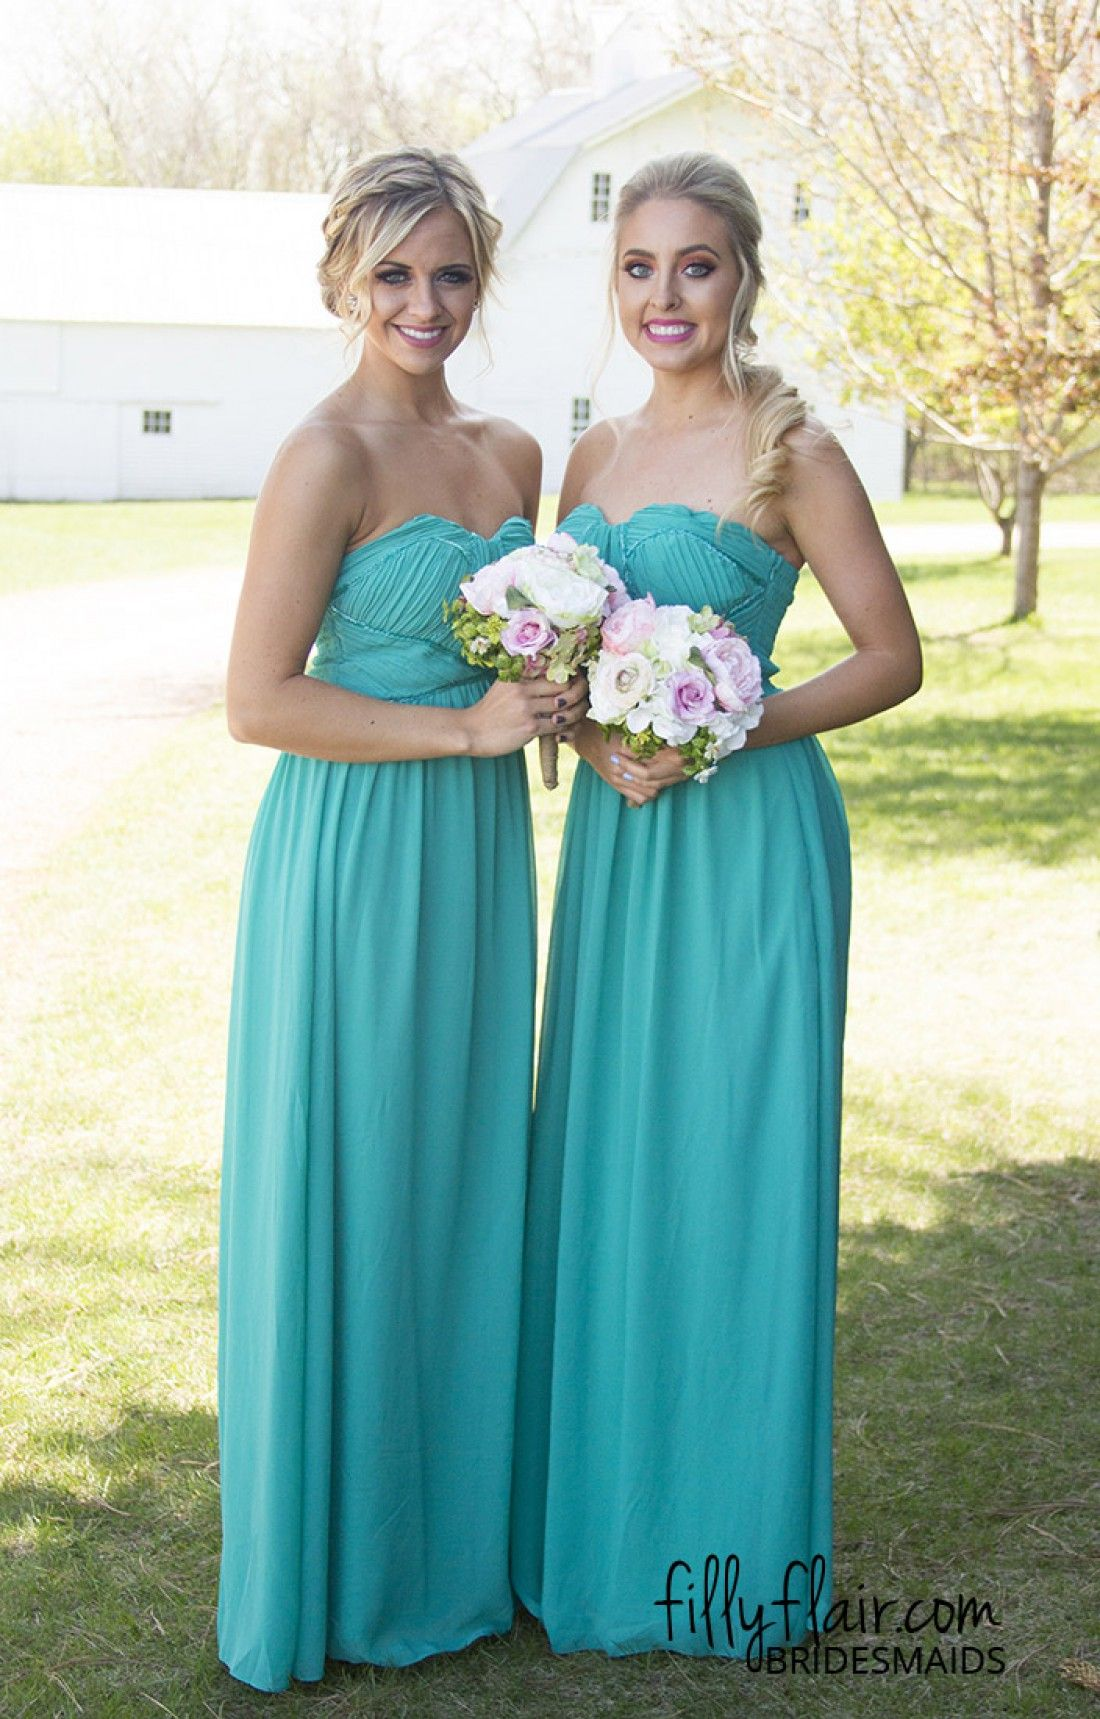 This color of bridesmaid dress is gorgeous bridesmaid dress